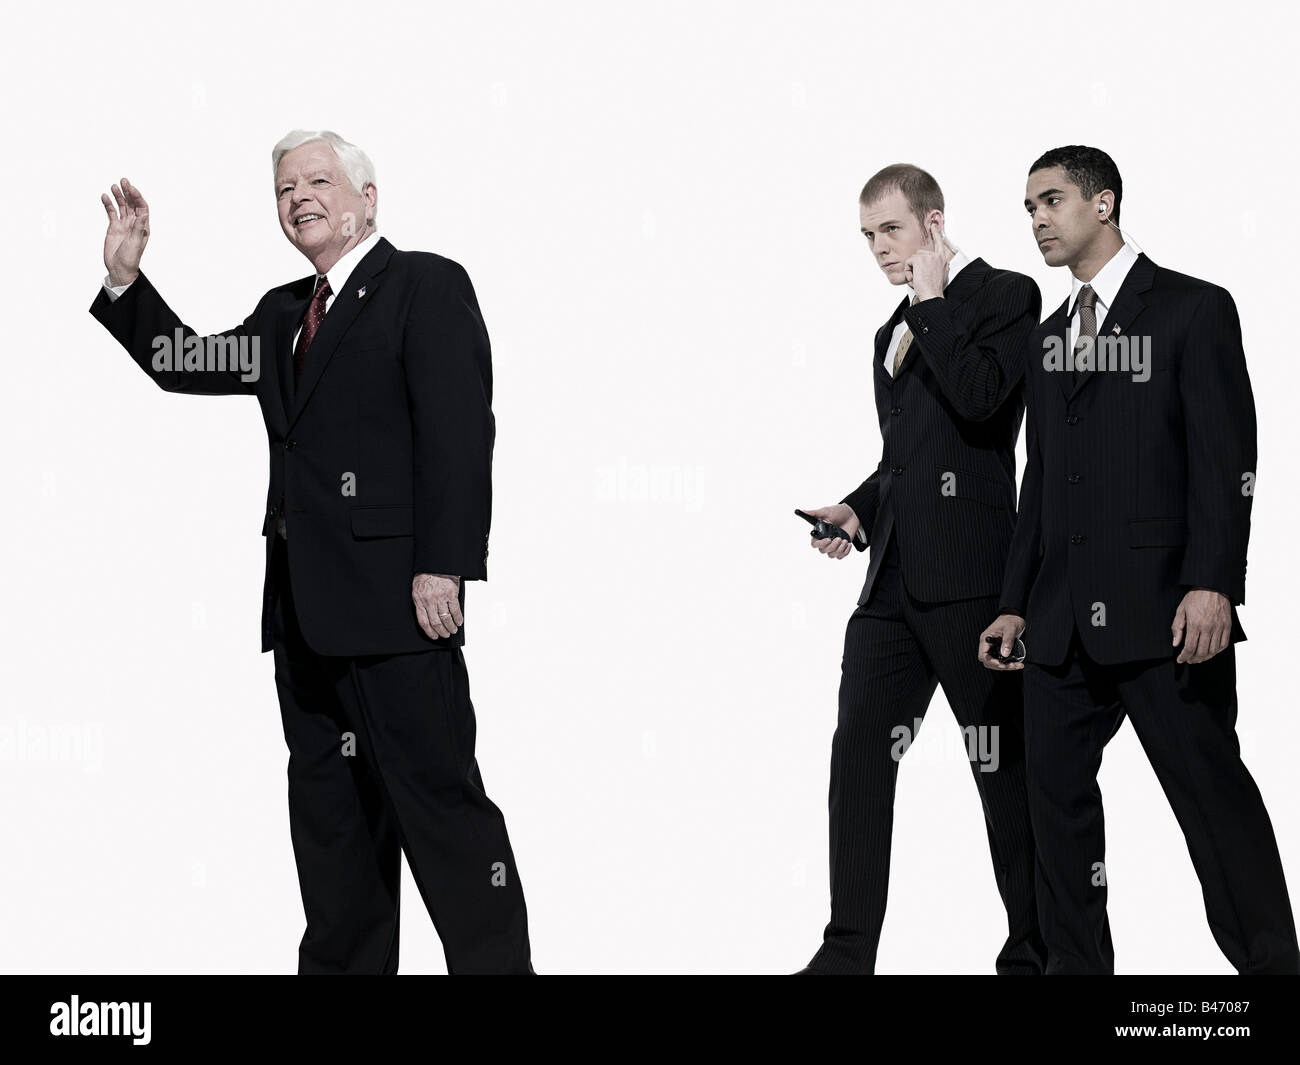 Politician and bodyguards - Stock Image